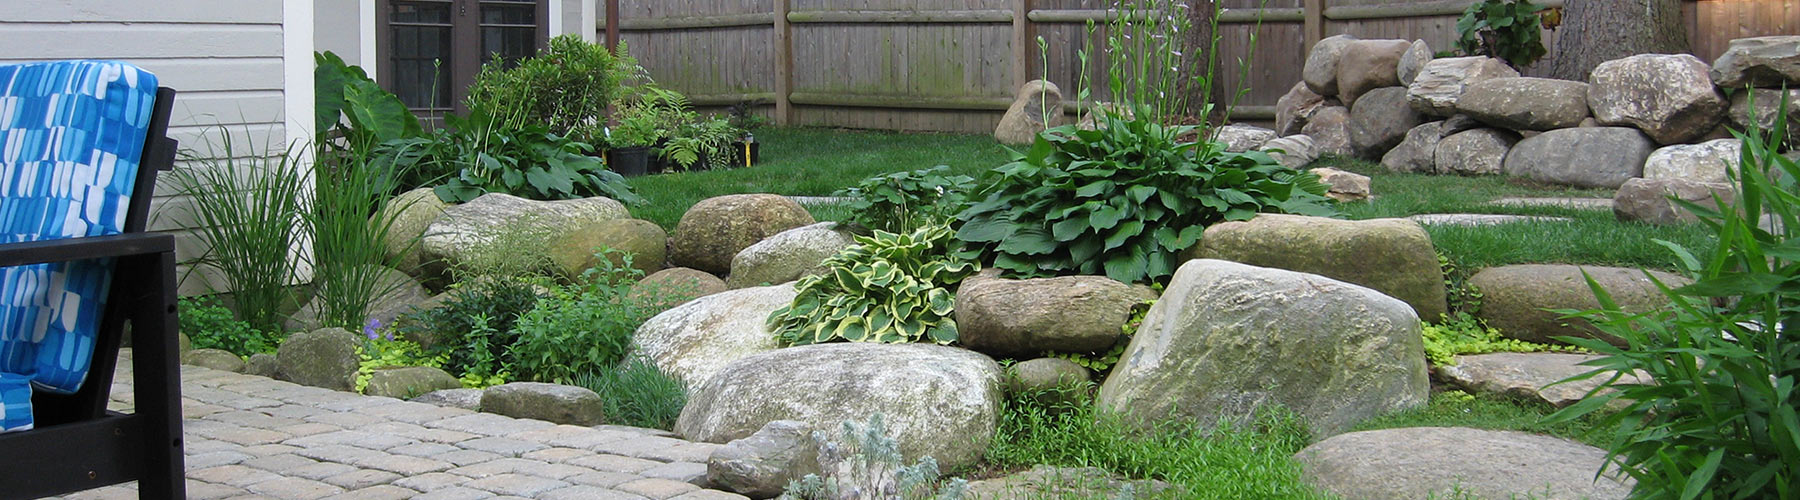 Boulders with hostas